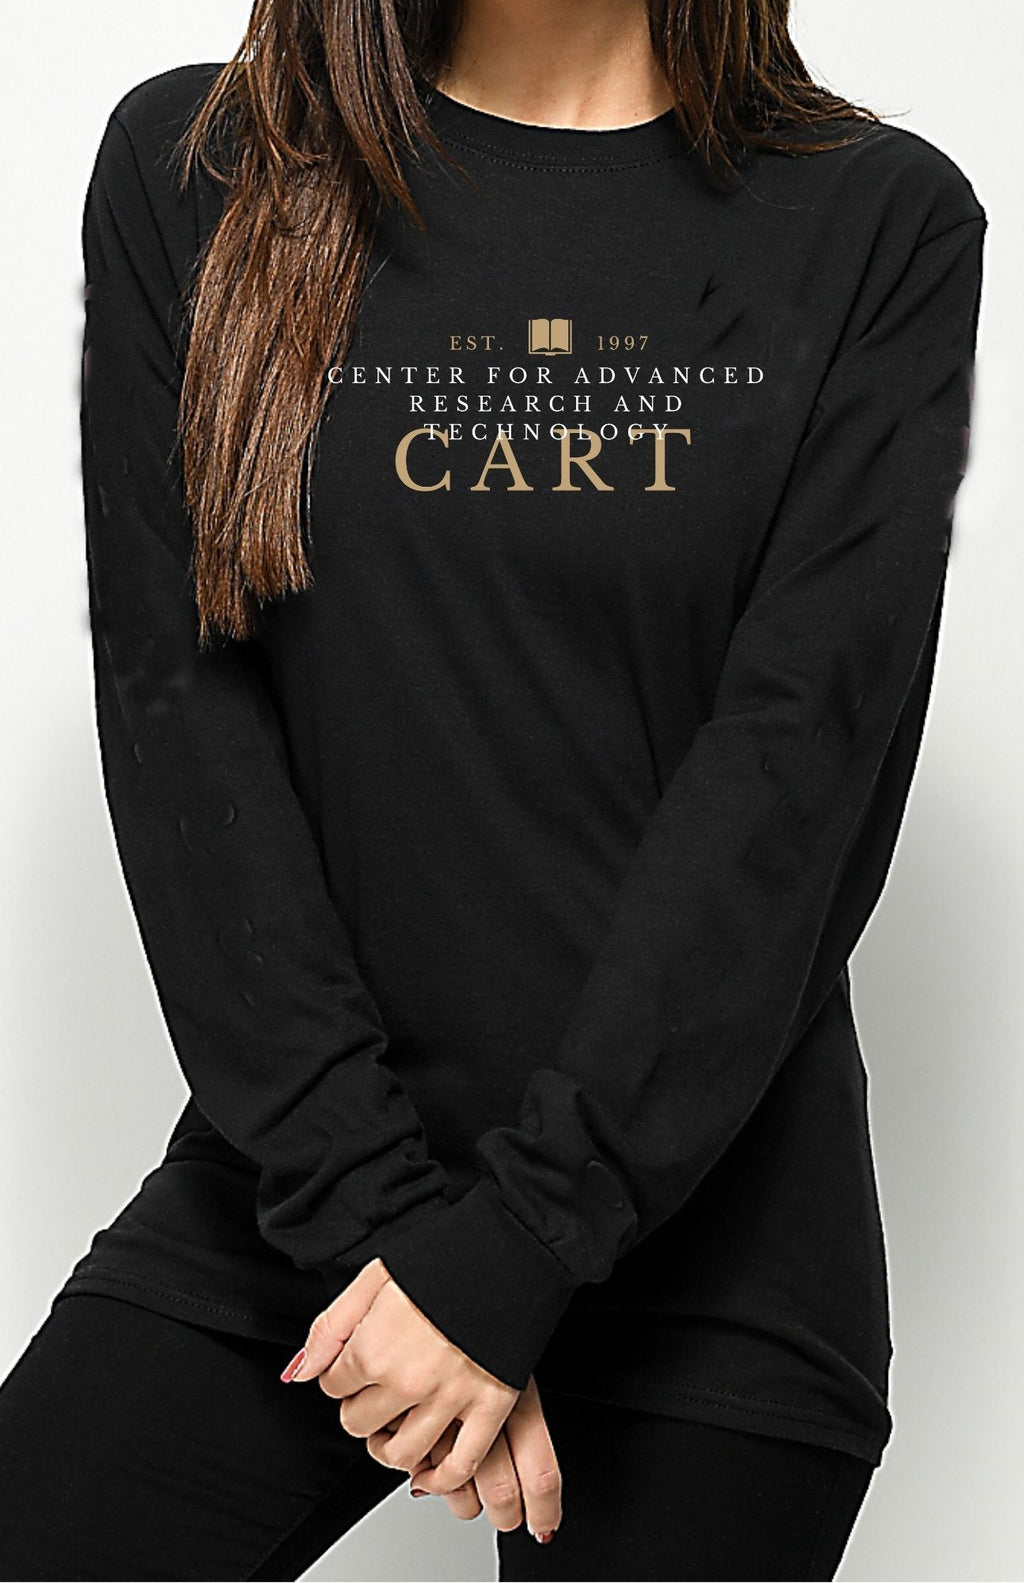 Long Sleeve T-Shirt - CART Collegiate / Unisex Fit